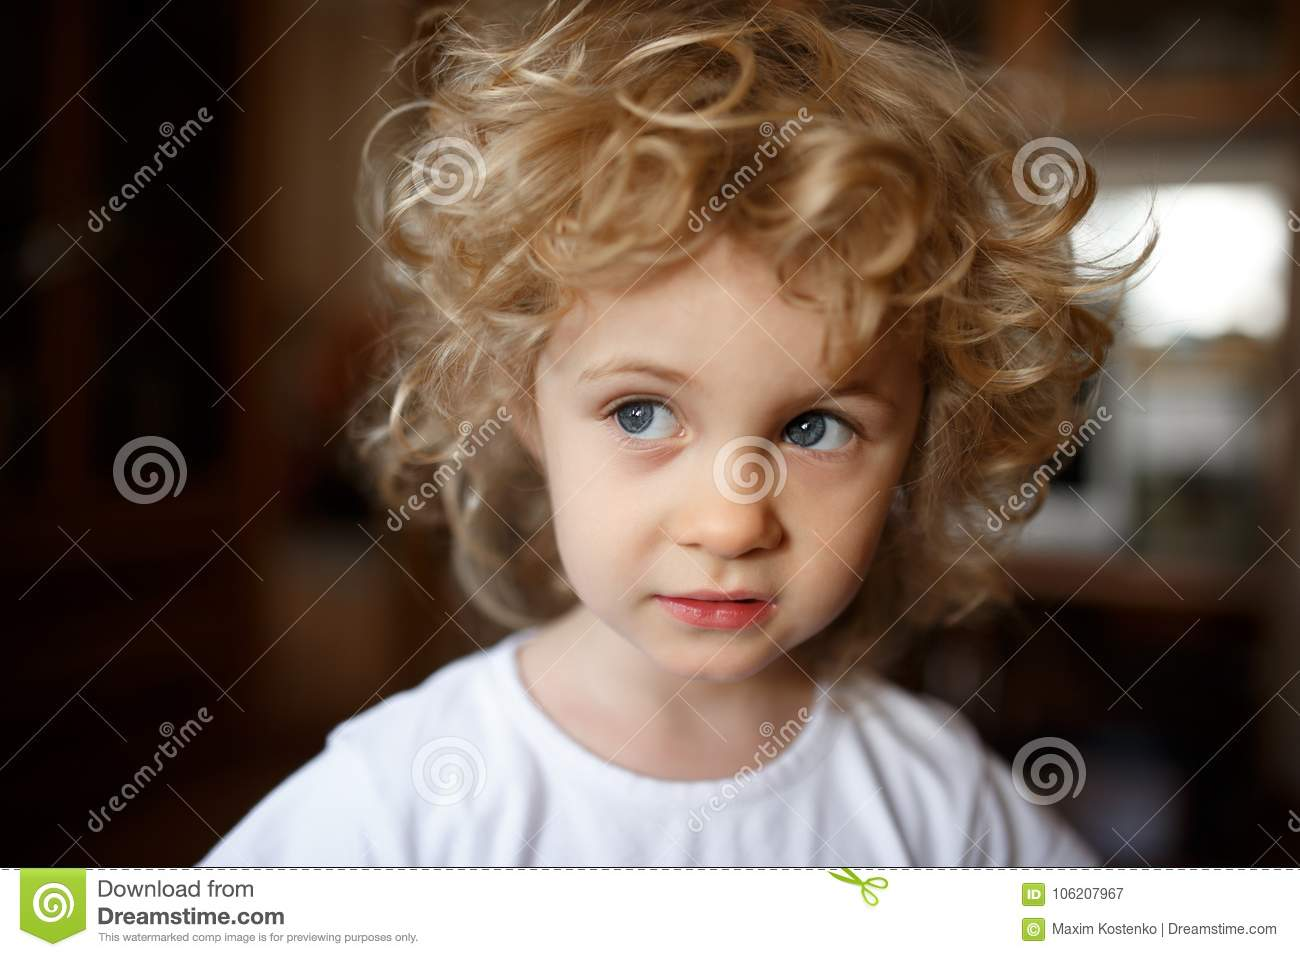 Portrait of adorable little blonde girl with curly hair.